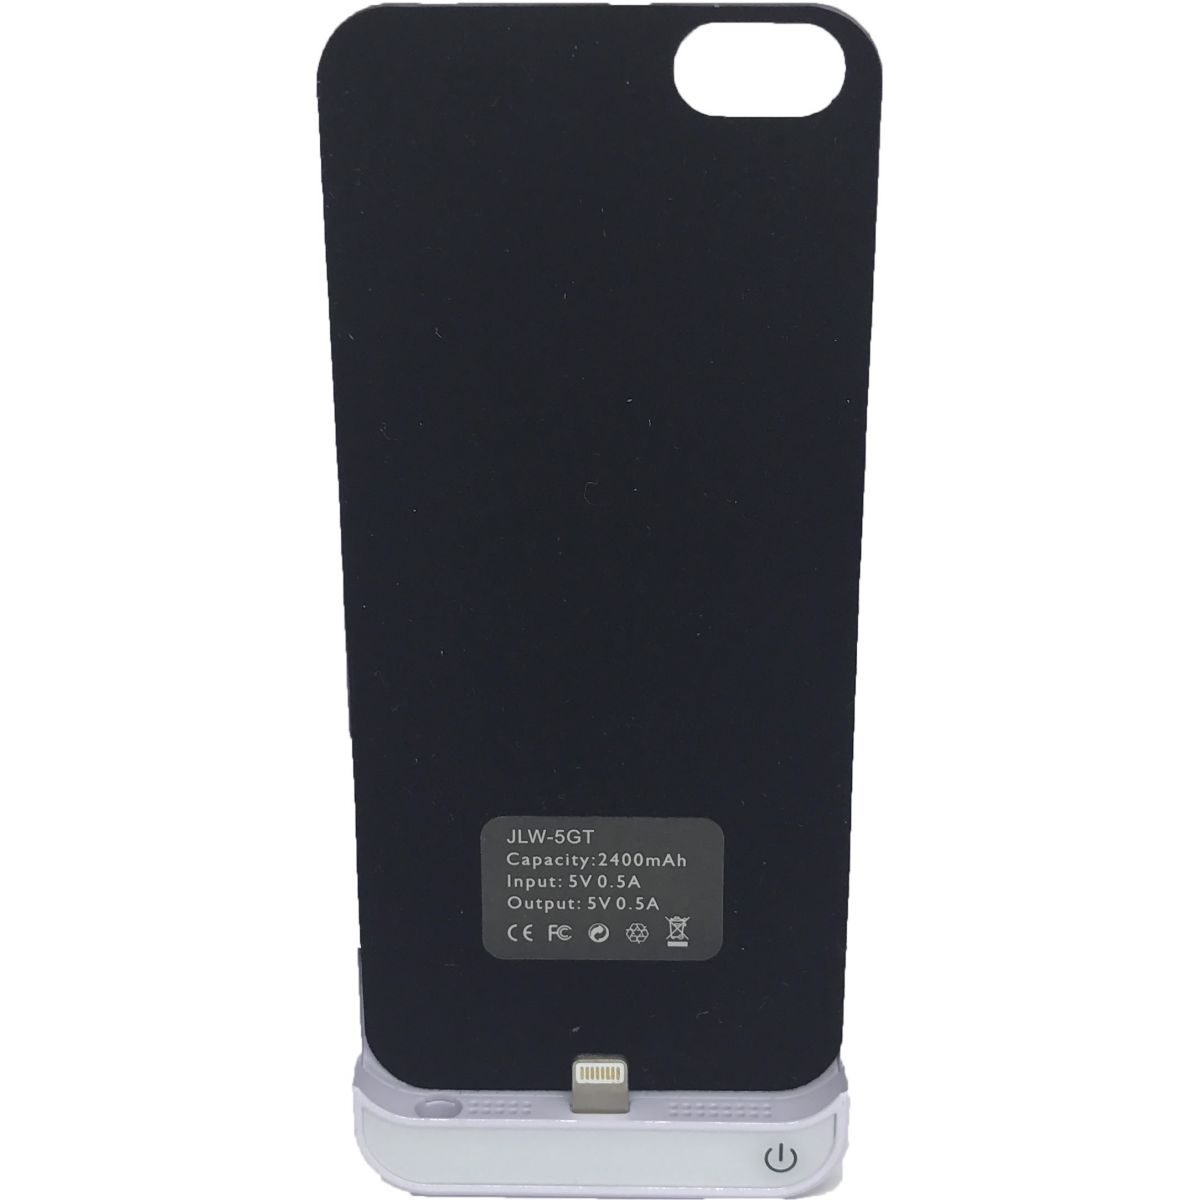 Capa Carregadora Powerbank Externa Ultrá Fina iPhone 5 5S 5C SE 2400mah